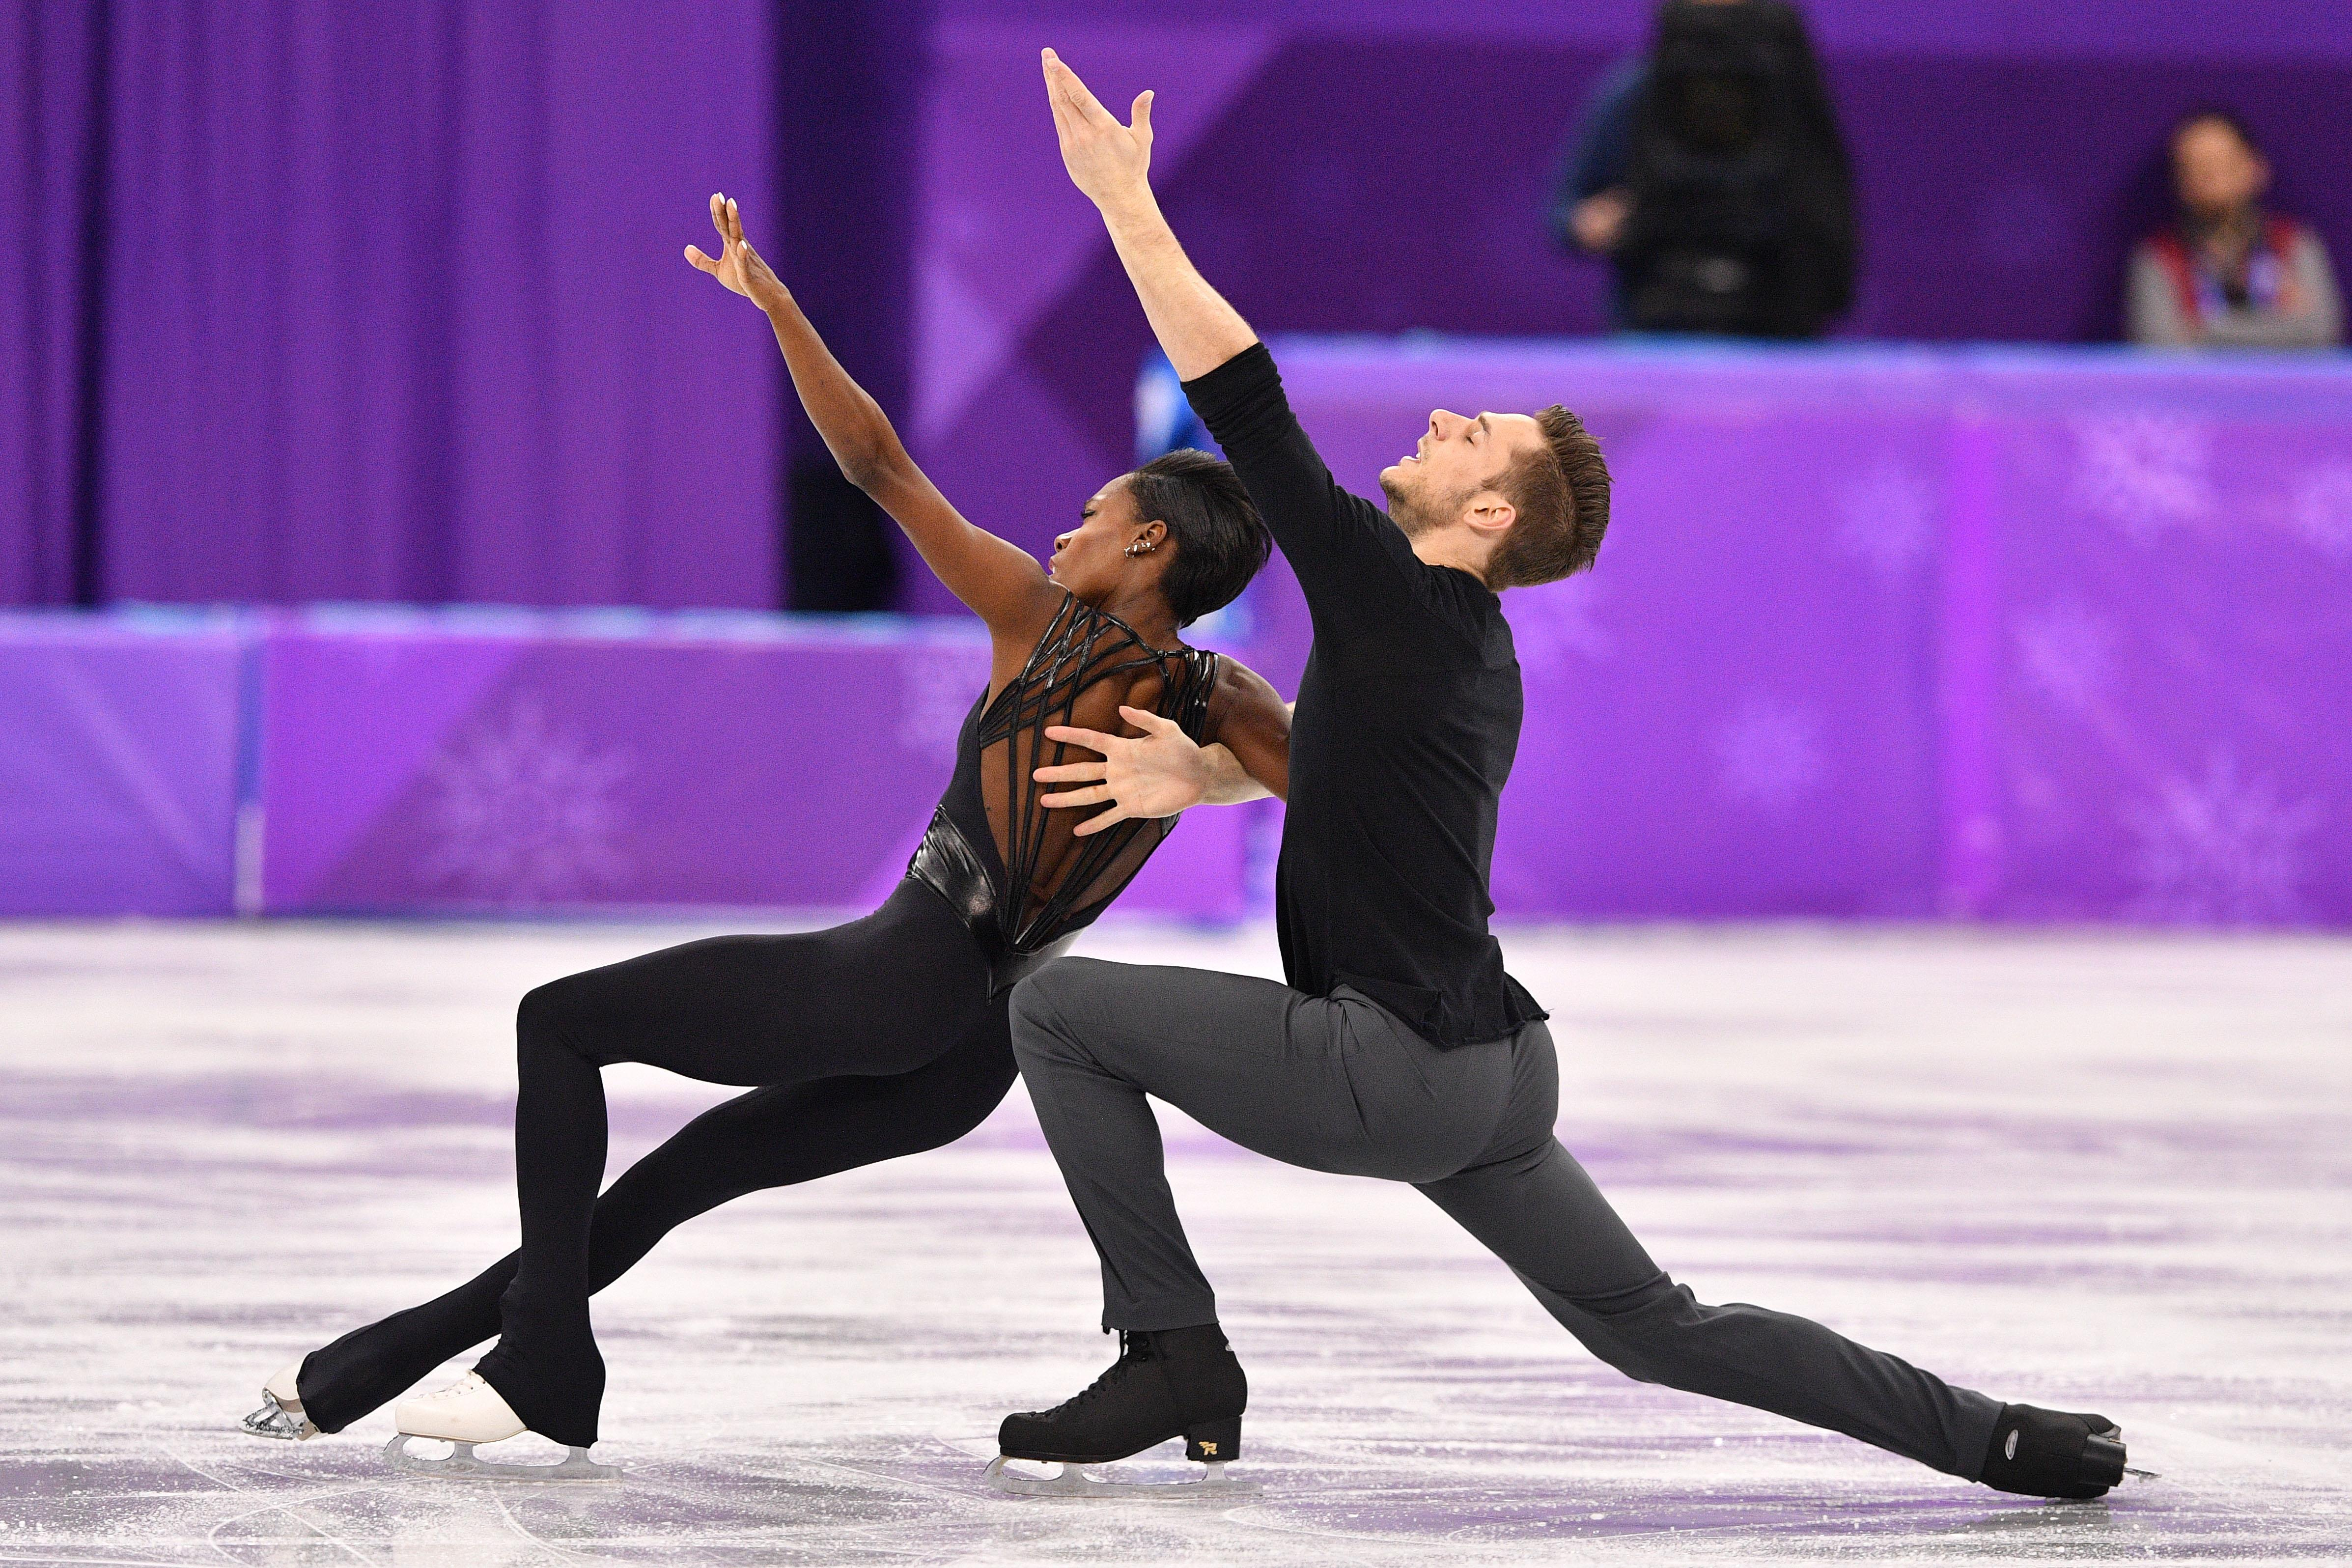 France's Vanessa James and France's Morgan Cipres compete in the pair skating free skating of the figure skating event during the Pyeongchang 2018 Winter Olympic Games at the Gangneung Ice Arena in Gangneung on February 15, 2018.  / AFP PHOTO / Mladen ANTONOV        (Photo credit should read MLADEN ANTONOV/AFP/Getty Images)